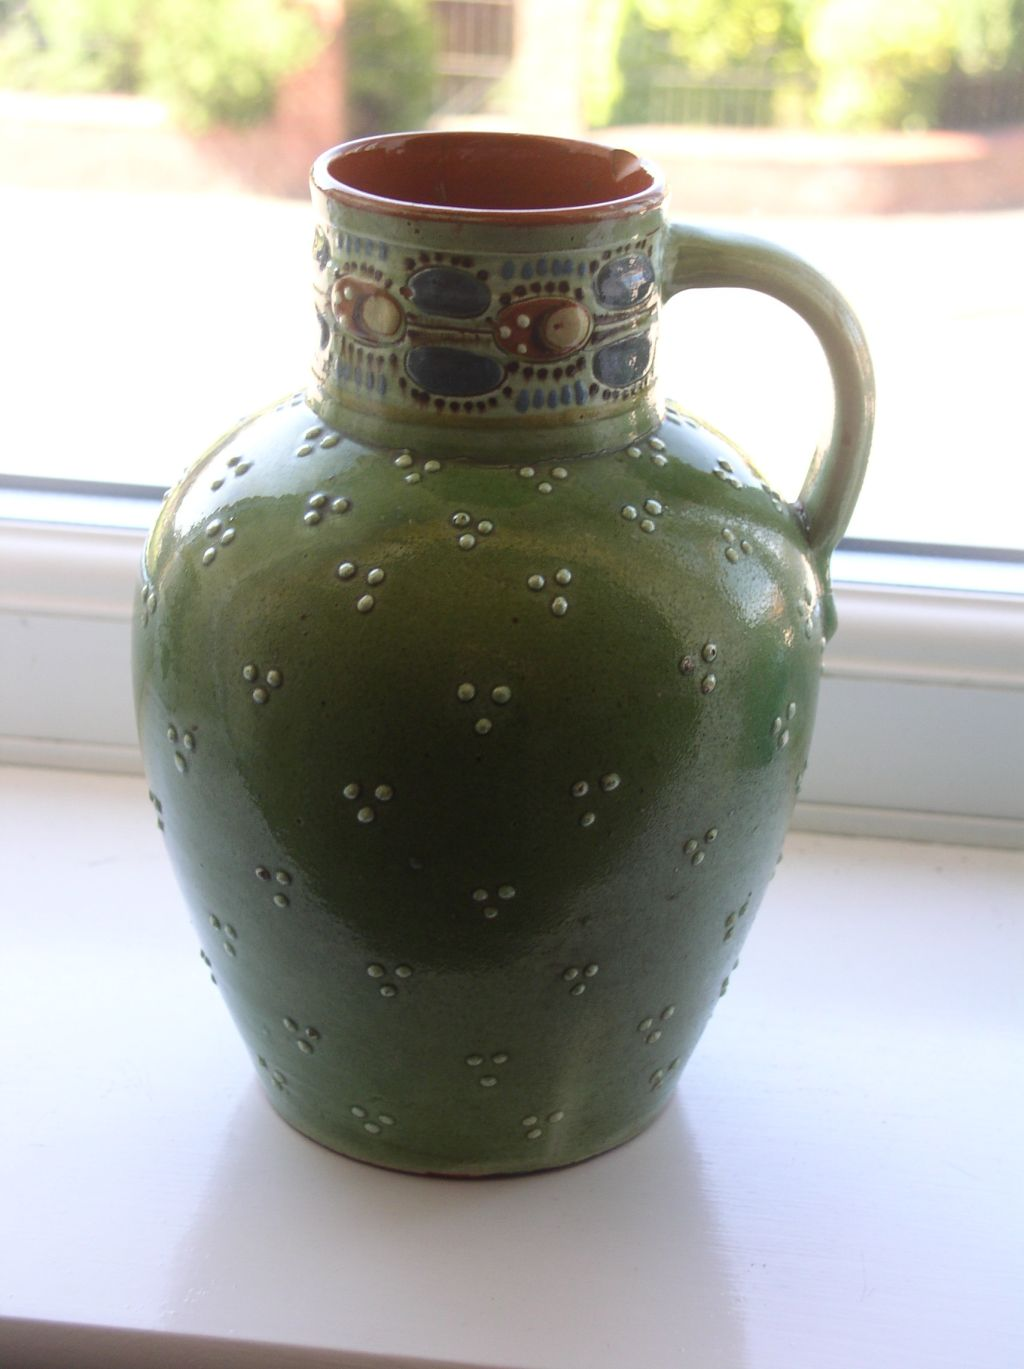 An old green jug with ladybird pattern - Paul Wranitzky P1010217